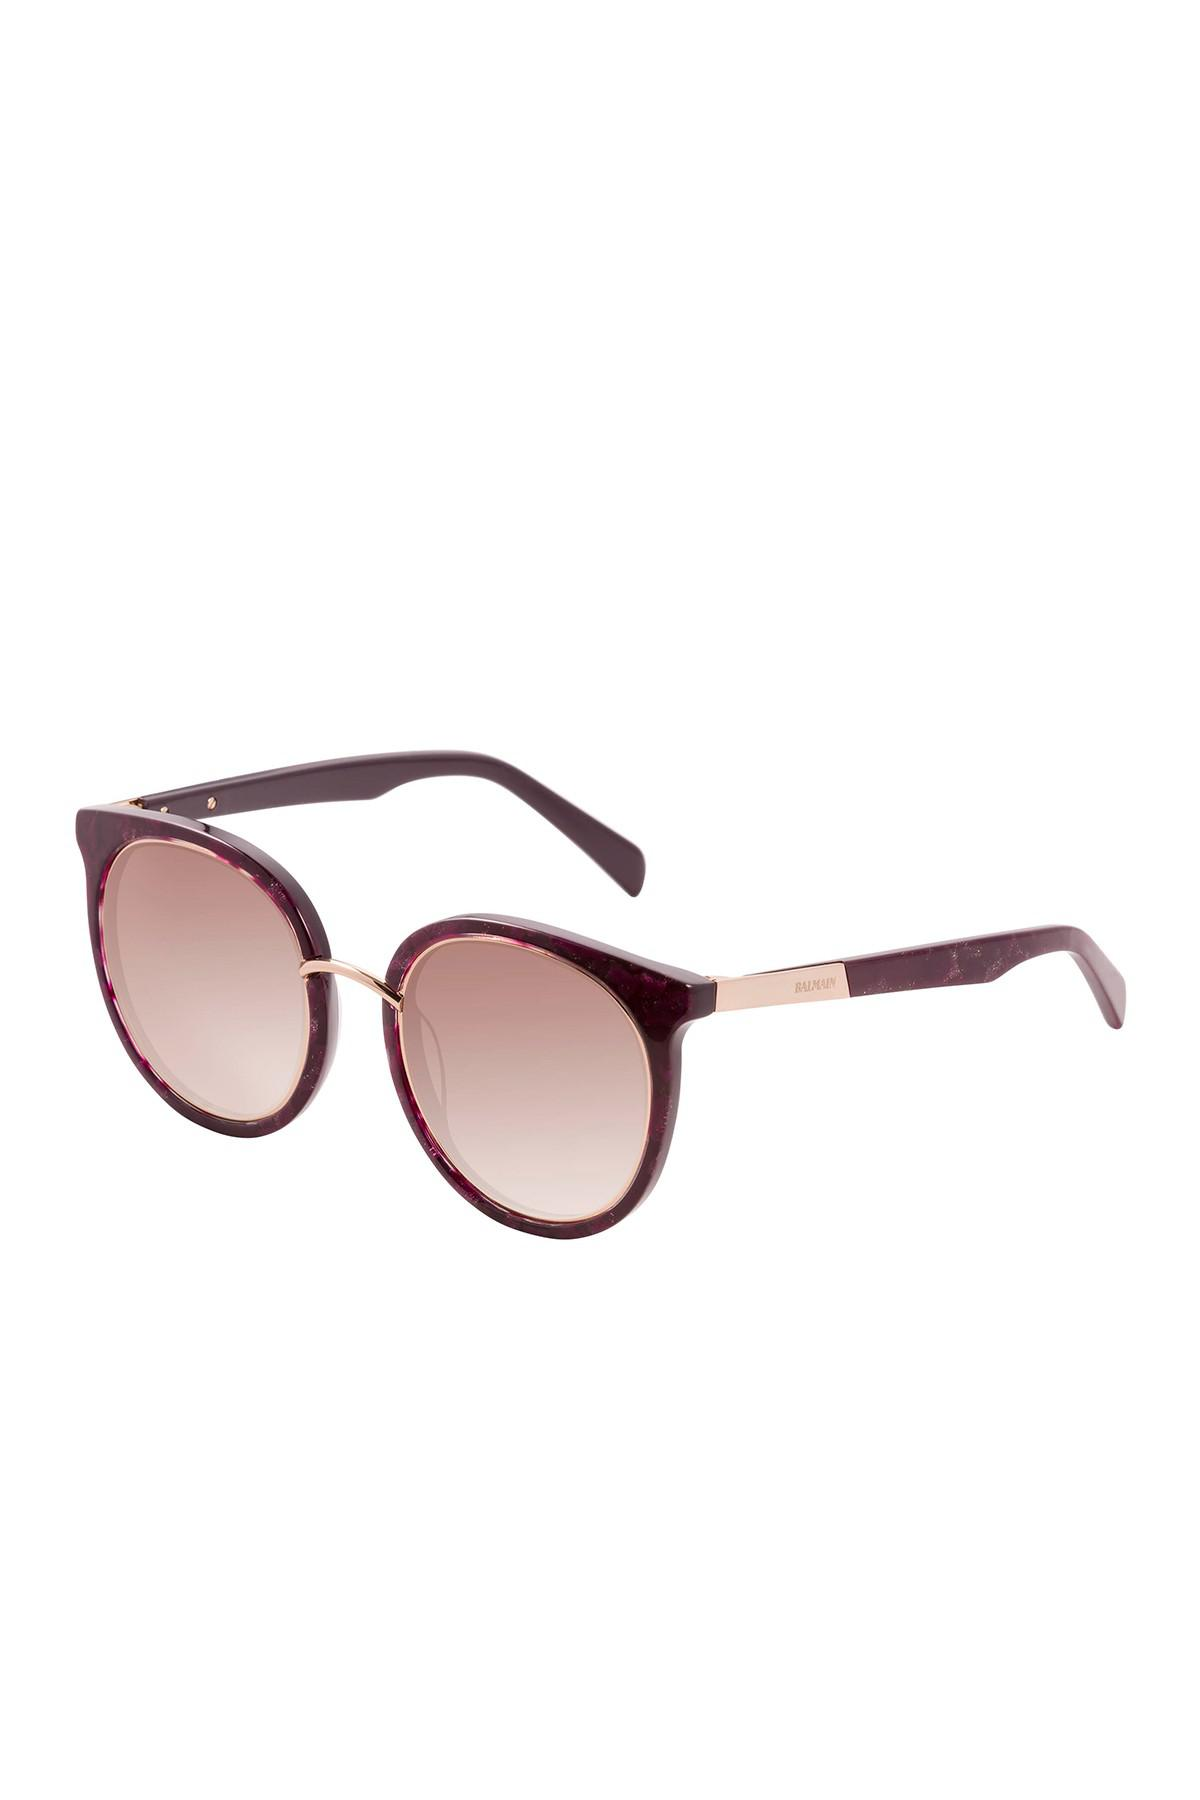 0a7a40580e Gallery. Previously sold at  Nordstrom Rack · Women s Round Sunglasses ...